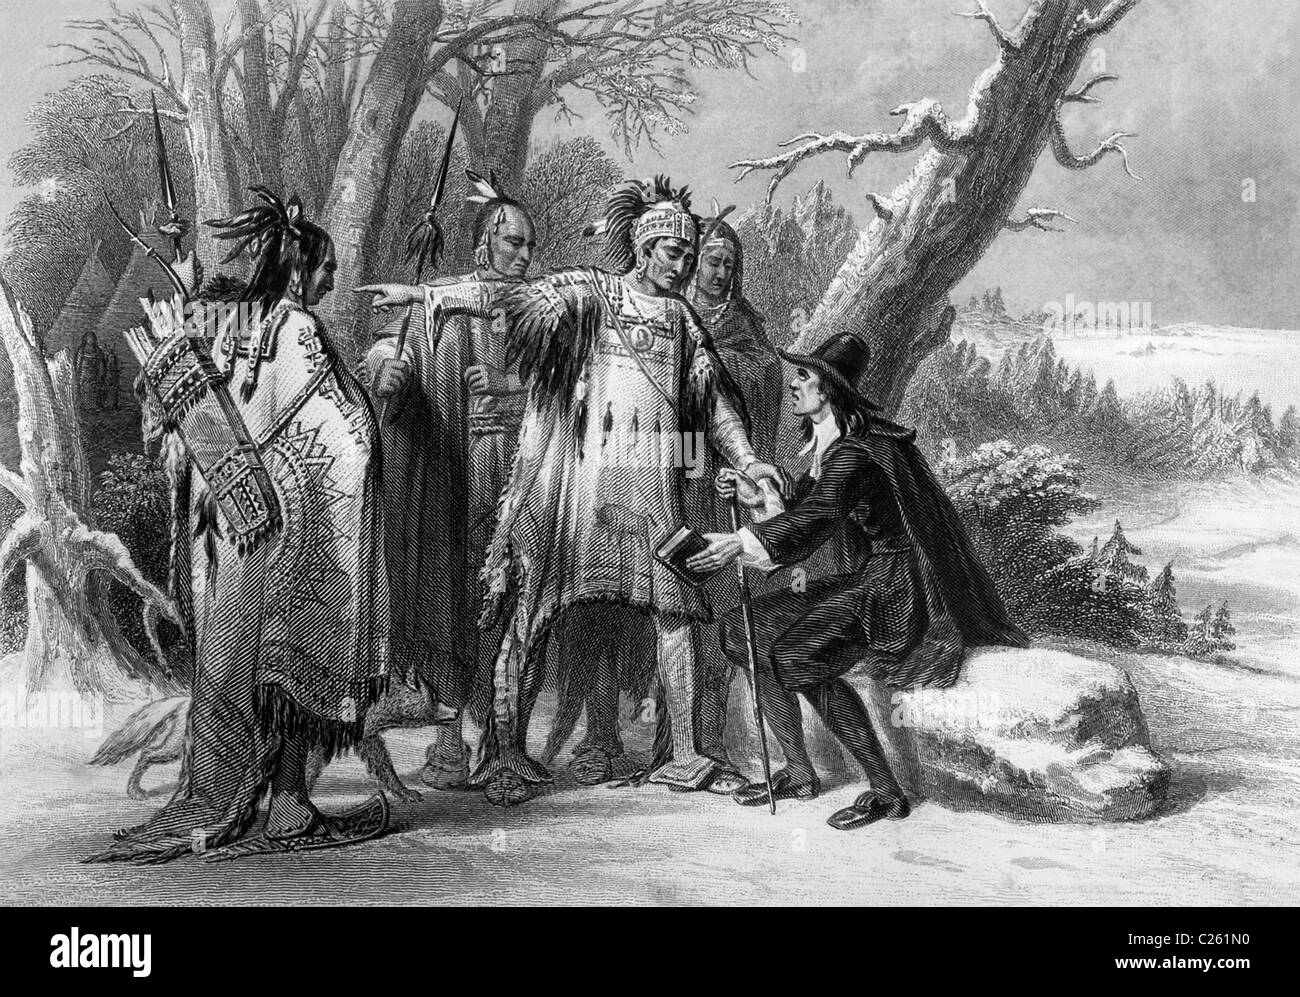 Roger Williams secured land from the Narragansetts and founded Providence Plantation in Rhode Island. - Stock Image